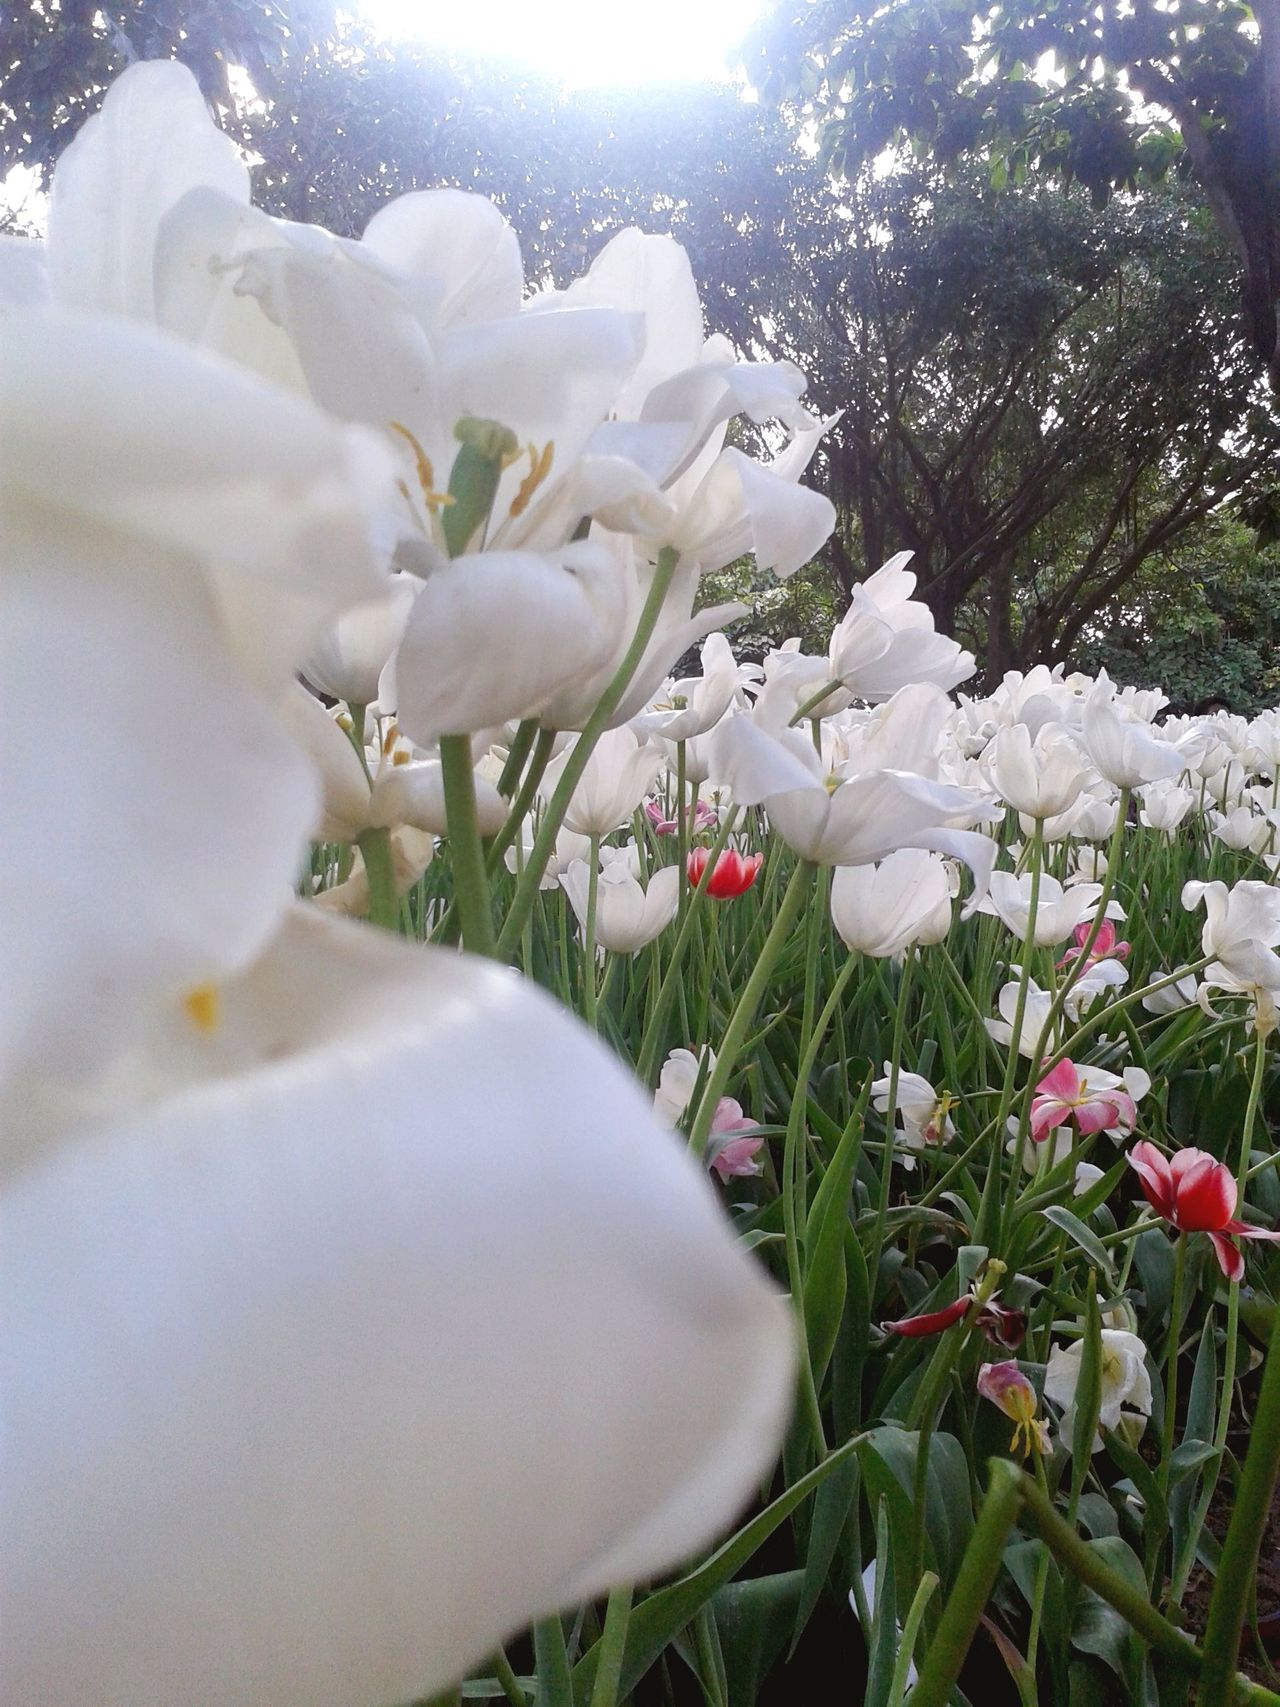 Flower Plant Nature Growth White Color Freshness Petal Fragility No People Beauty In Nature Flower Head Blossom Day Close-up Outdoors